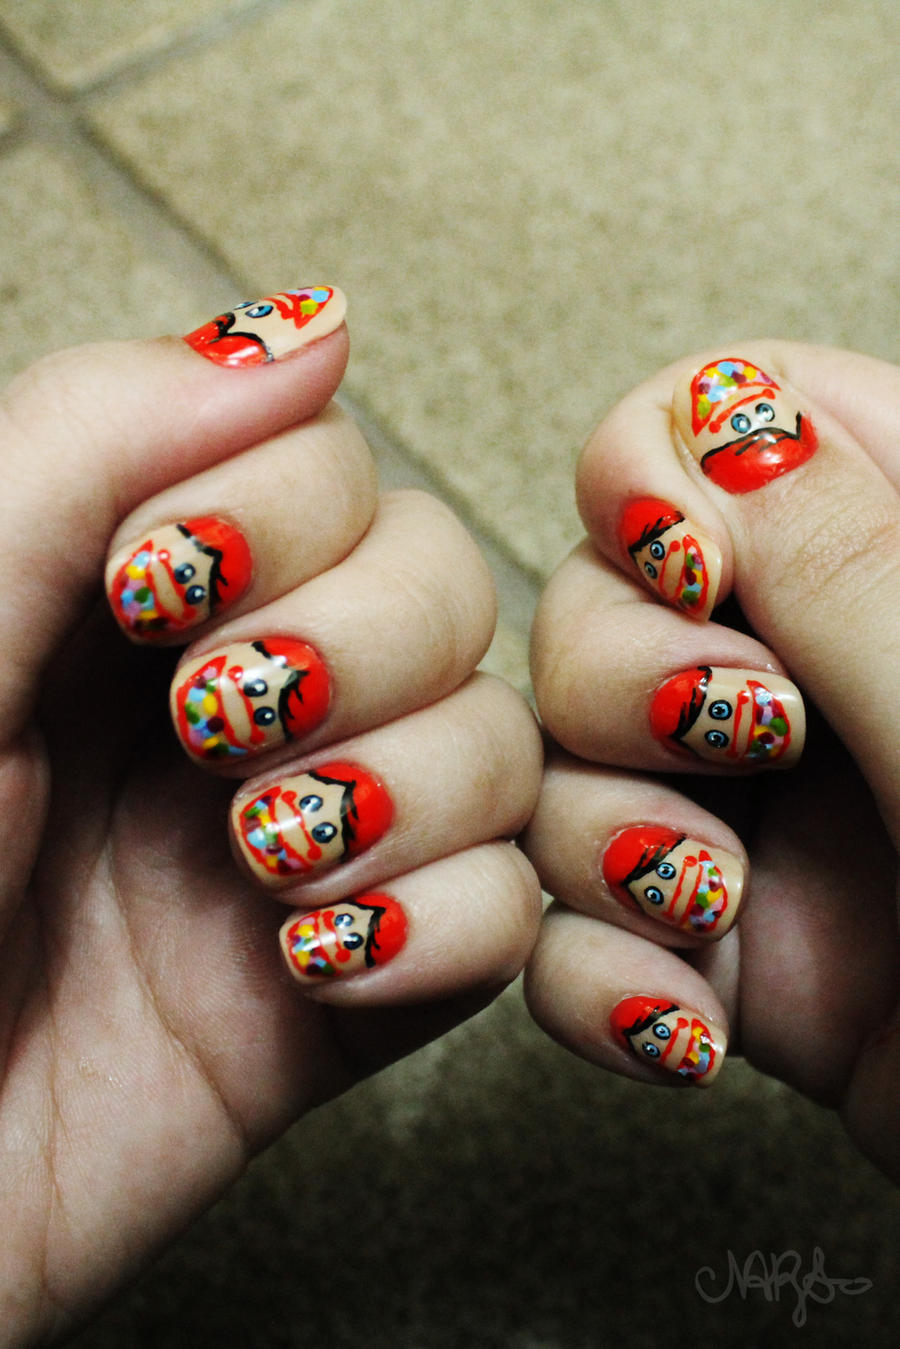 Chiclets mini nail art by natsy alencar on deviantart chiclets mini nail art by natsy alencar prinsesfo Images